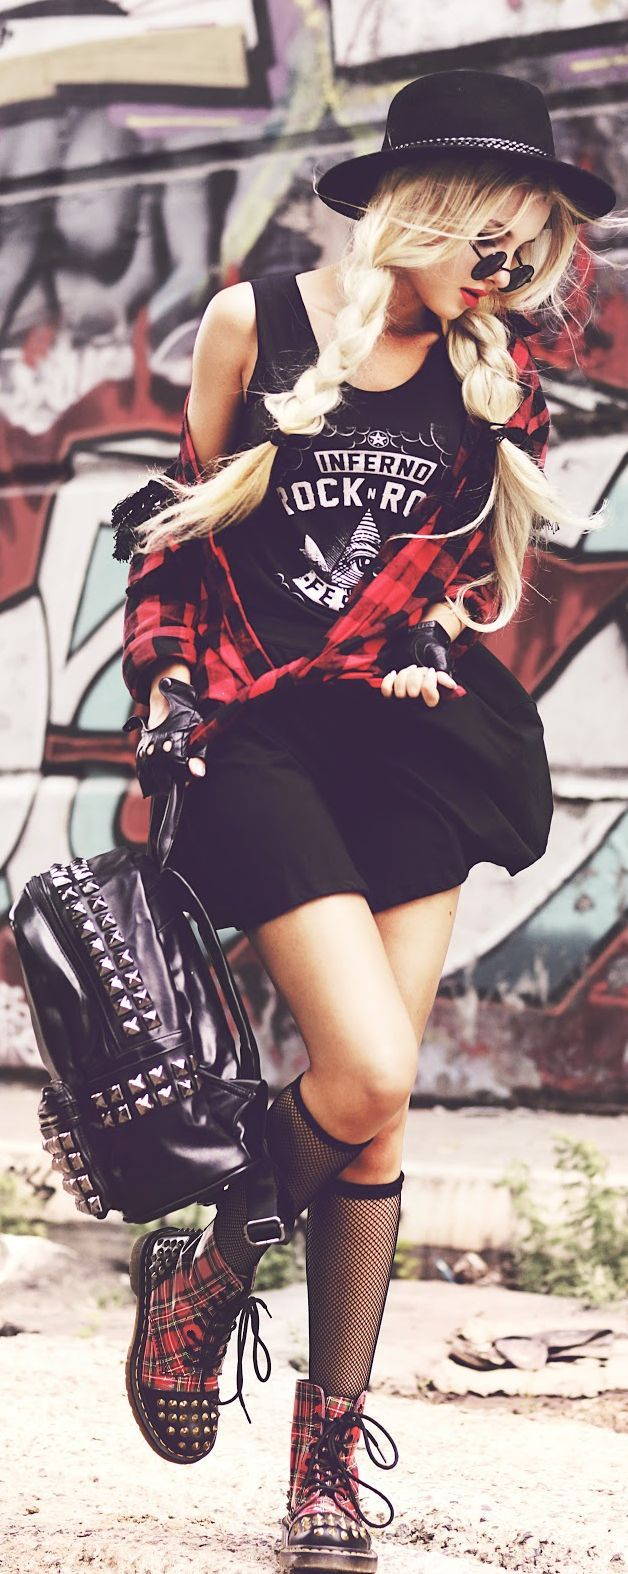 There is a lot going on here but def a feel I have gone for before.  I love the edgy tank mixed with the flannel.  Might not be everyone's style but the shades and hat add a stylish touch.  I also love studs and that backpack is outrageous but I am into it